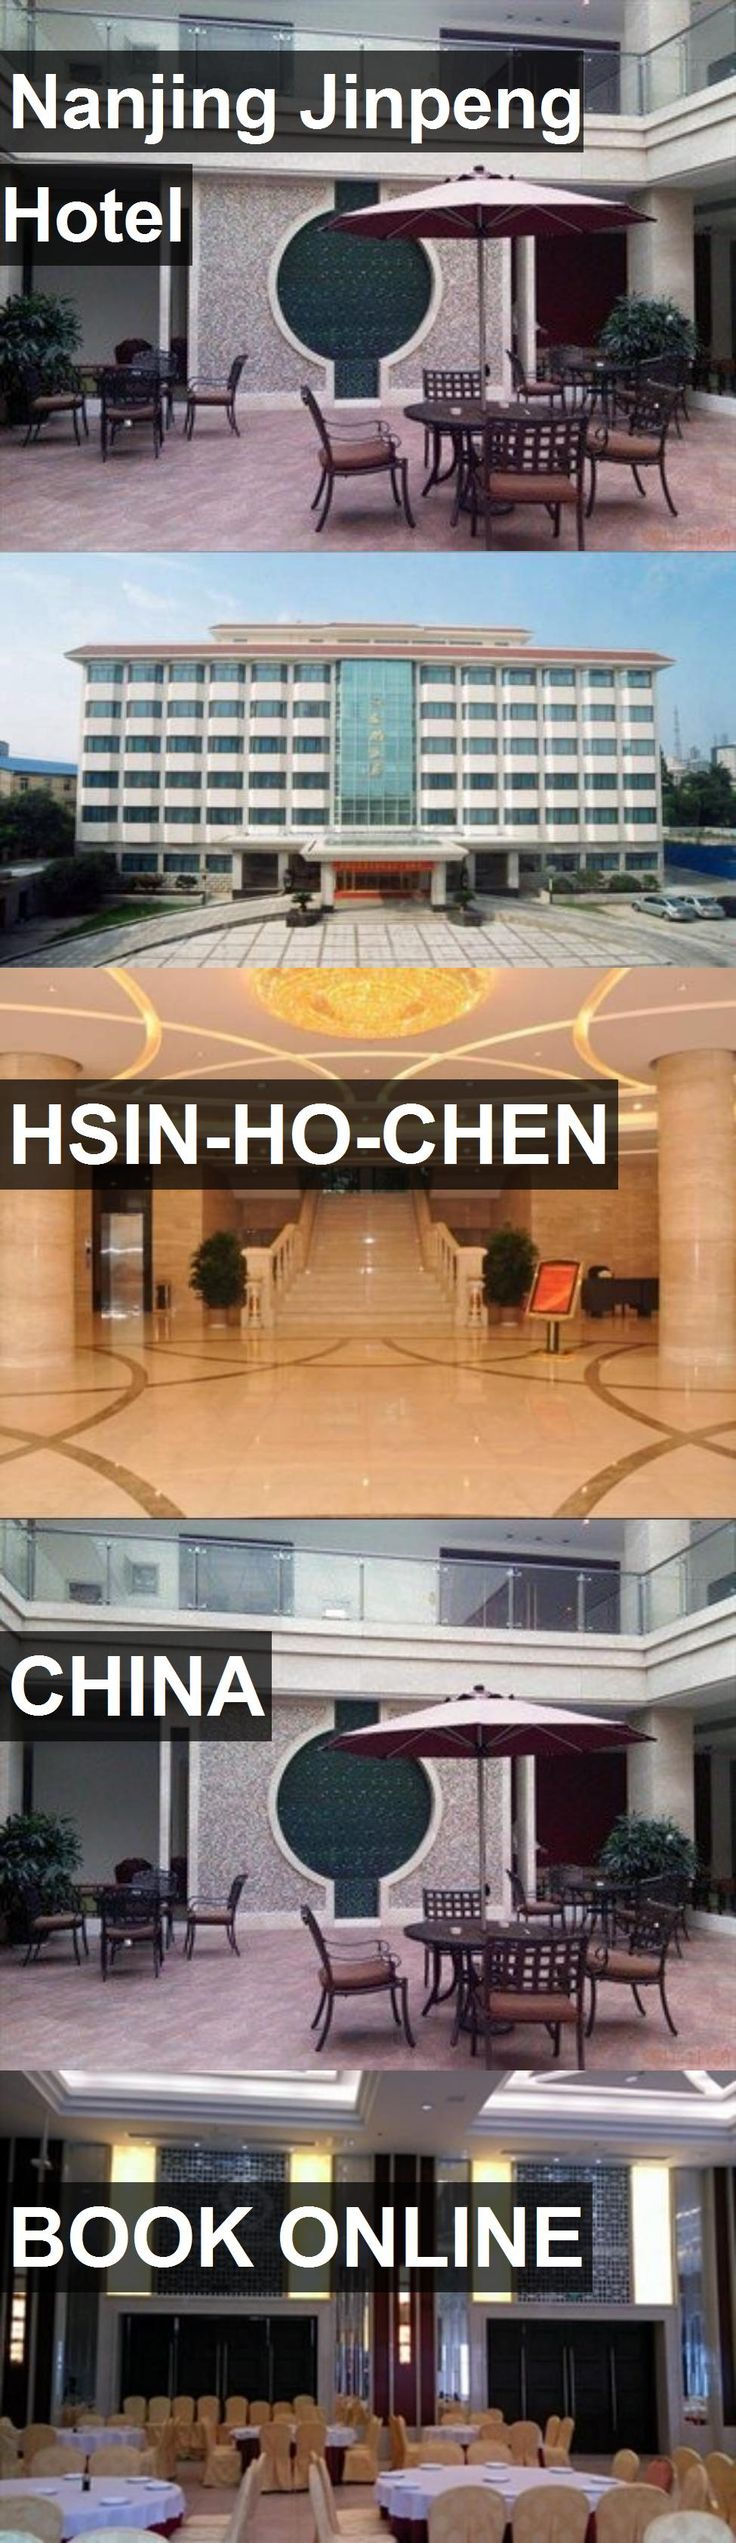 Hotel Nanjing Jinpeng Hotel in Hsin-ho-chen, China. For more information, photos, reviews and best prices please follow the link. #China #Hsin-ho-chen #NanjingJinpengHotel #hotel #travel #vacation